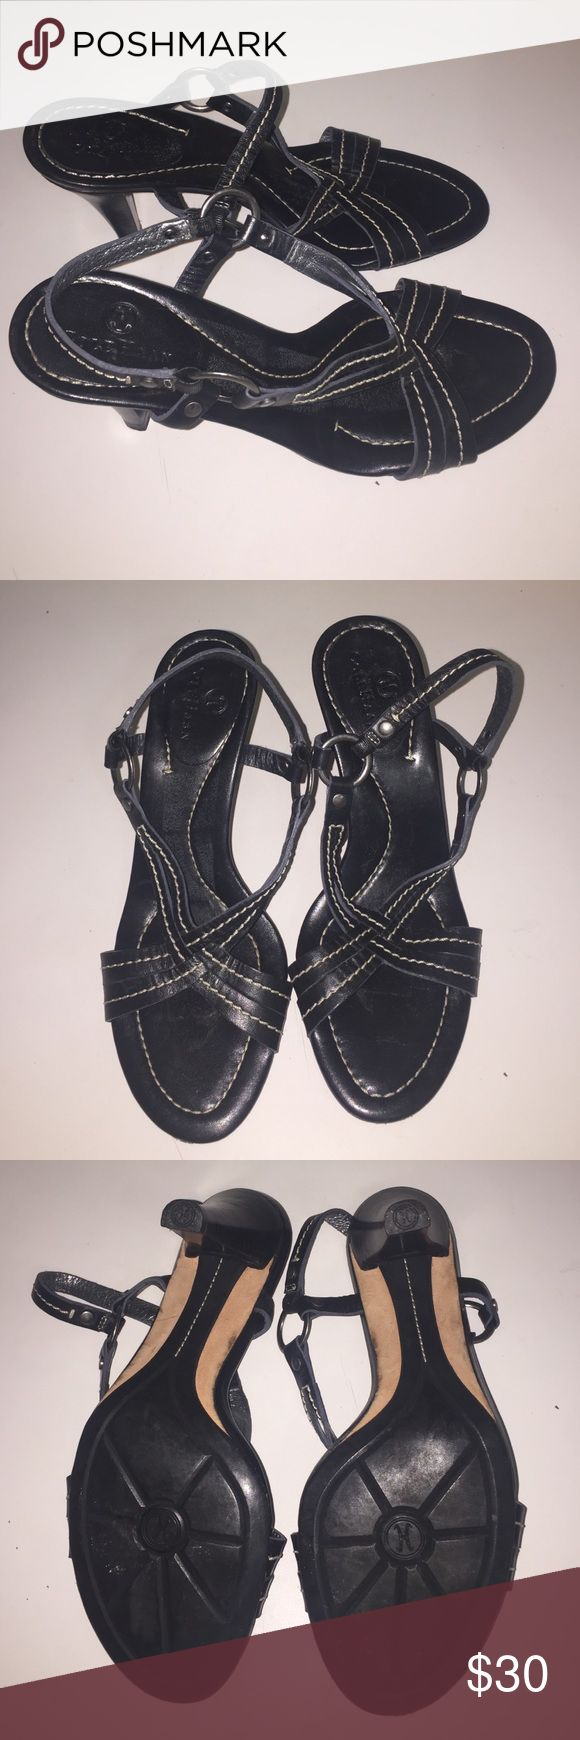 Cole Haan Heel Open Toe Sandals Sz 6 B This is a gently used must have item! We are unable to model items or take sales to PP. Willing to negotiate using the offer button. No trades. Happy Poshing! Cole Haan Shoes Heels